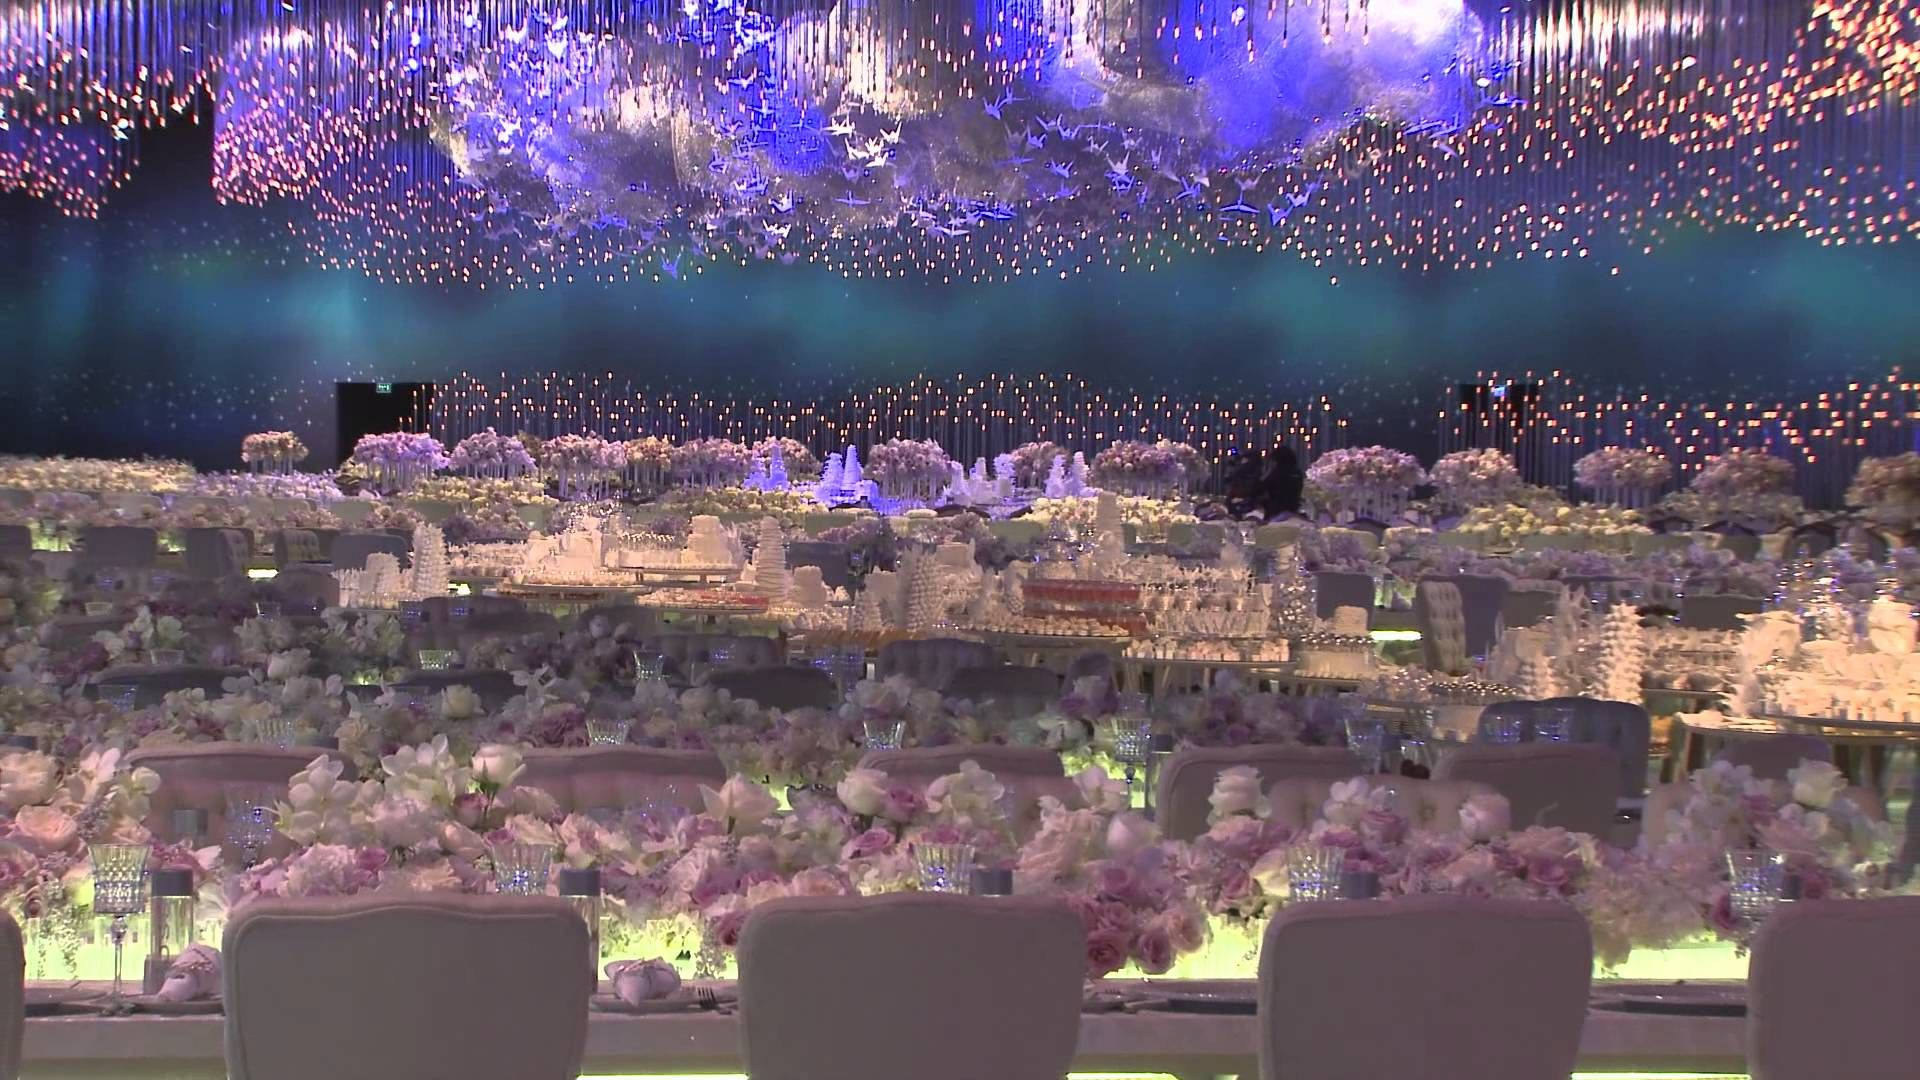 Wedding stage decoration dubai  Stunning Lucid Dream Event Production Videowow Now thatus an event